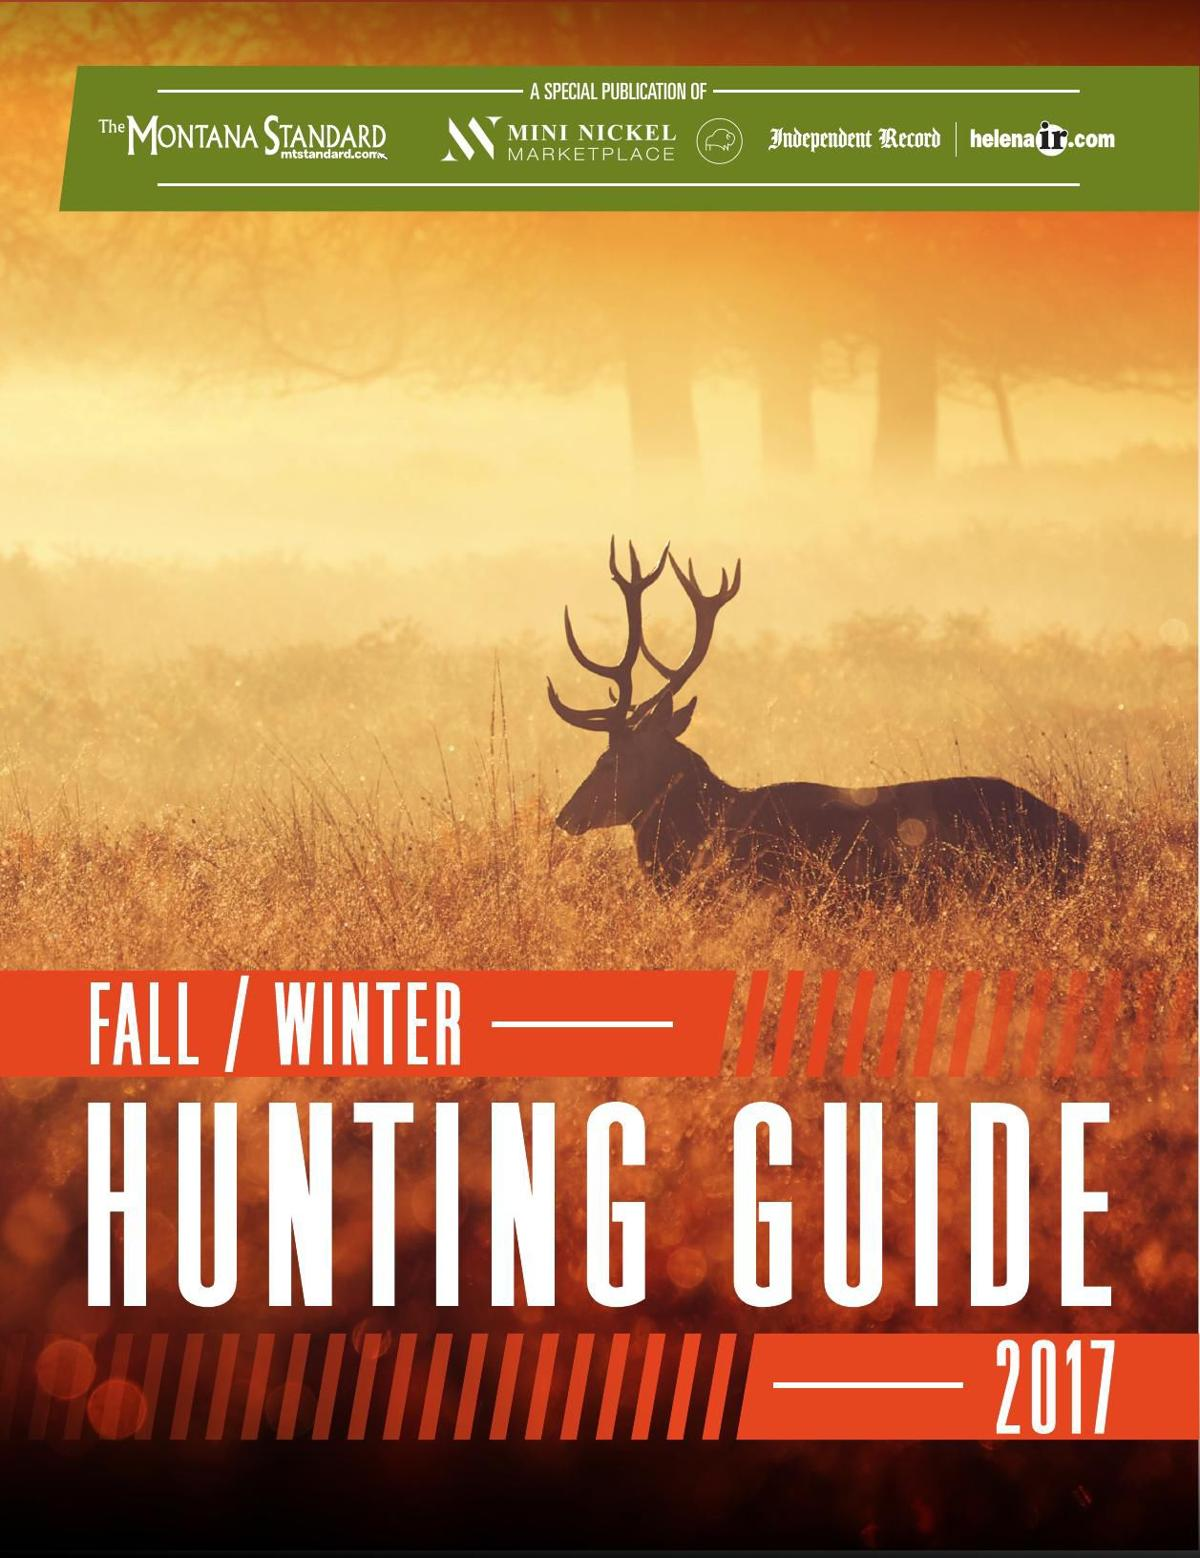 Fall/Winter Hunting Guide - 2017